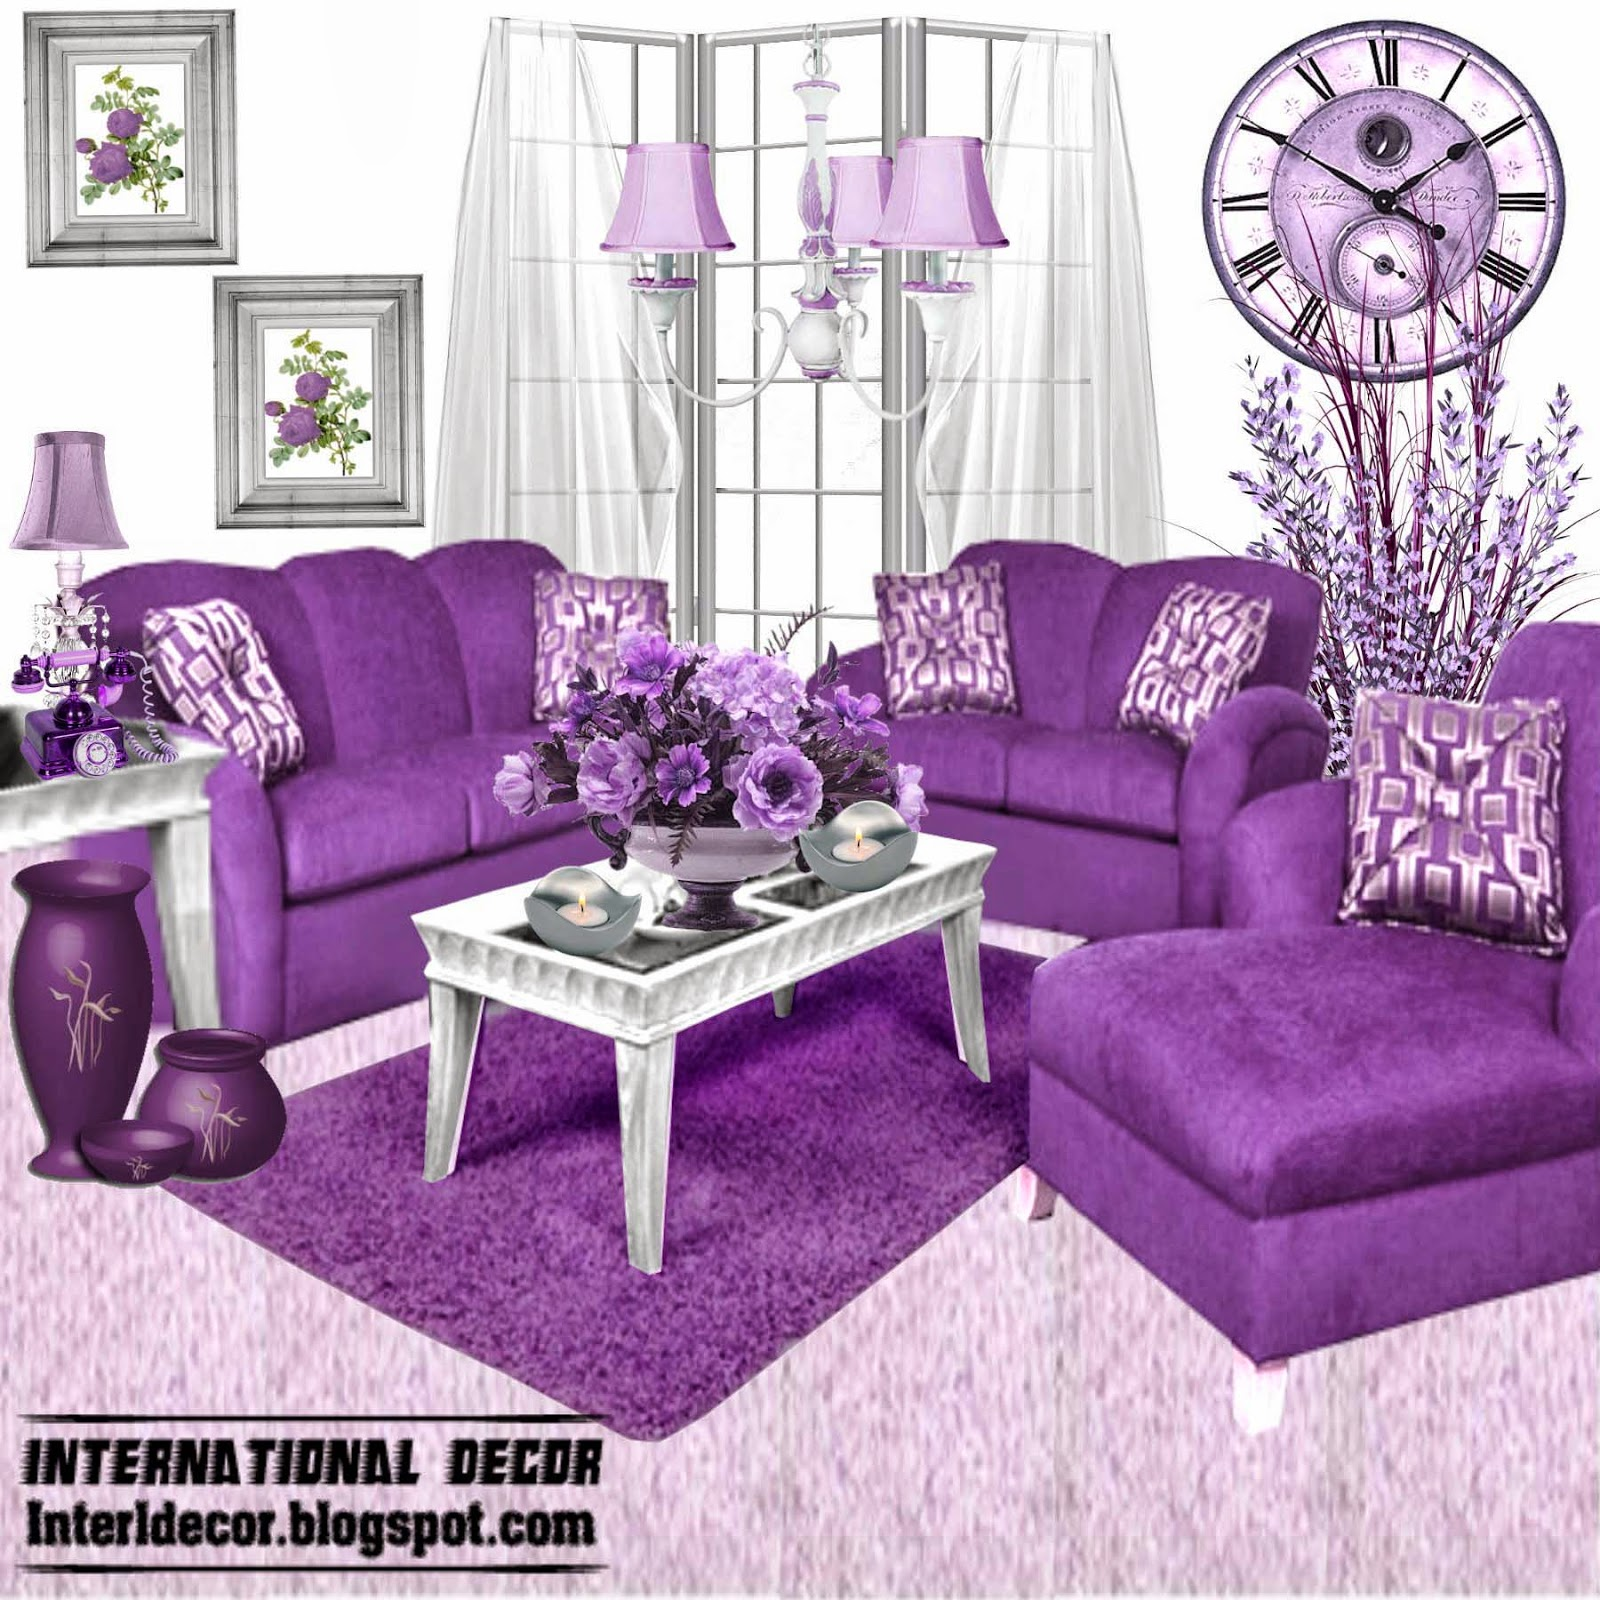 Purple Furniture For The Home Pinterest Purple